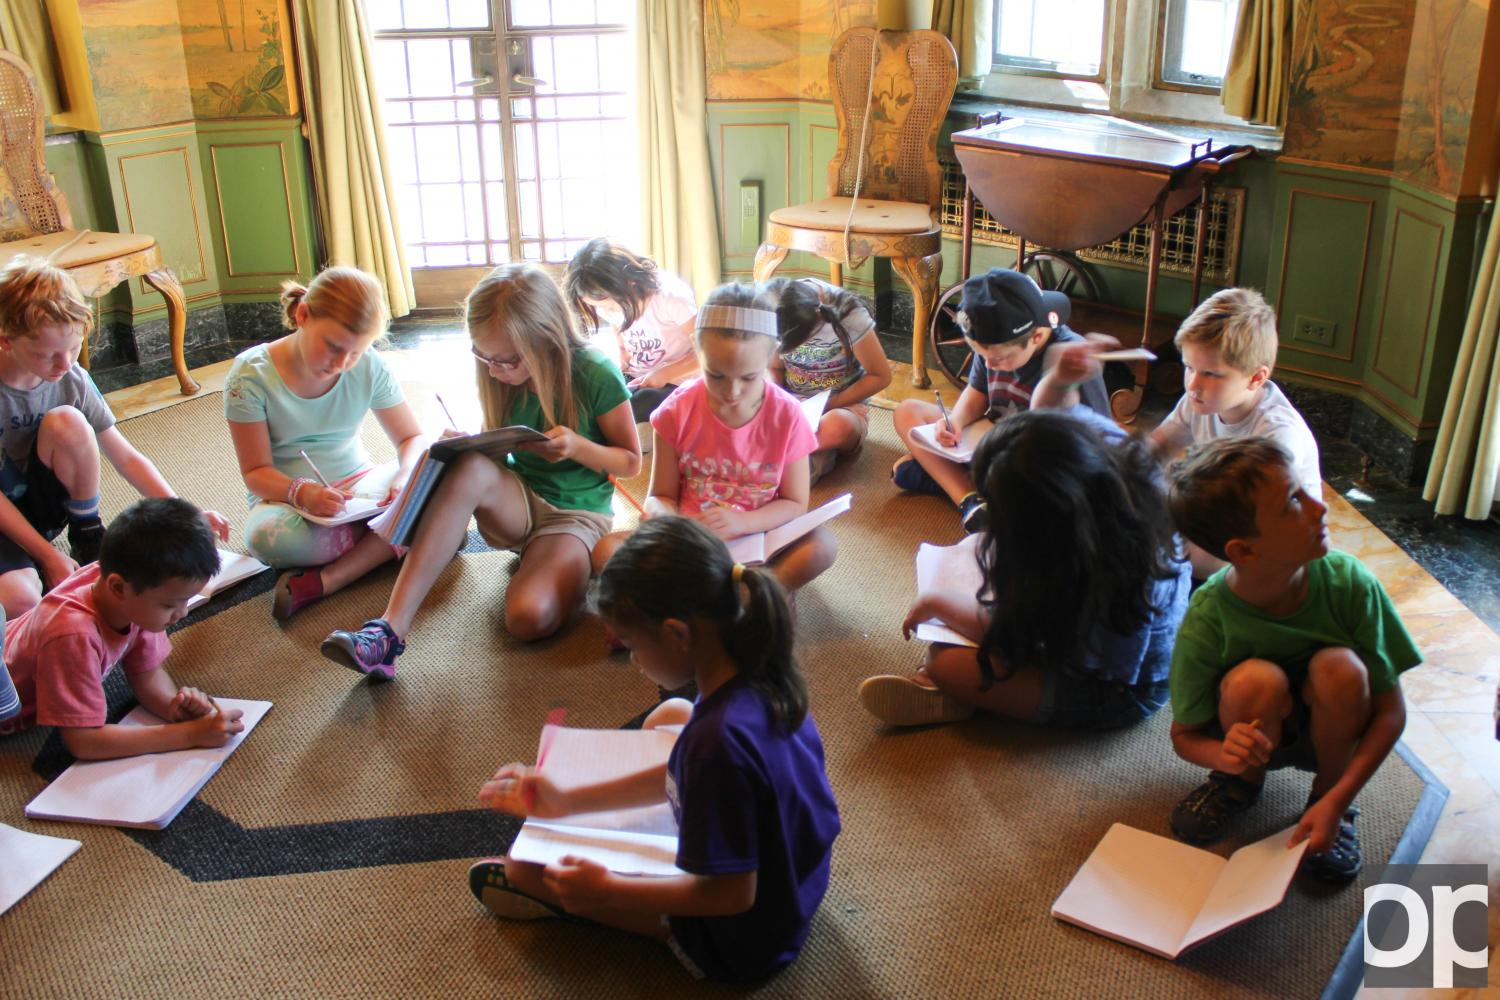 Kids+hone+their+writing+skills+inside+the+inspiring+halls+of+Meadowbrook+Mansion.